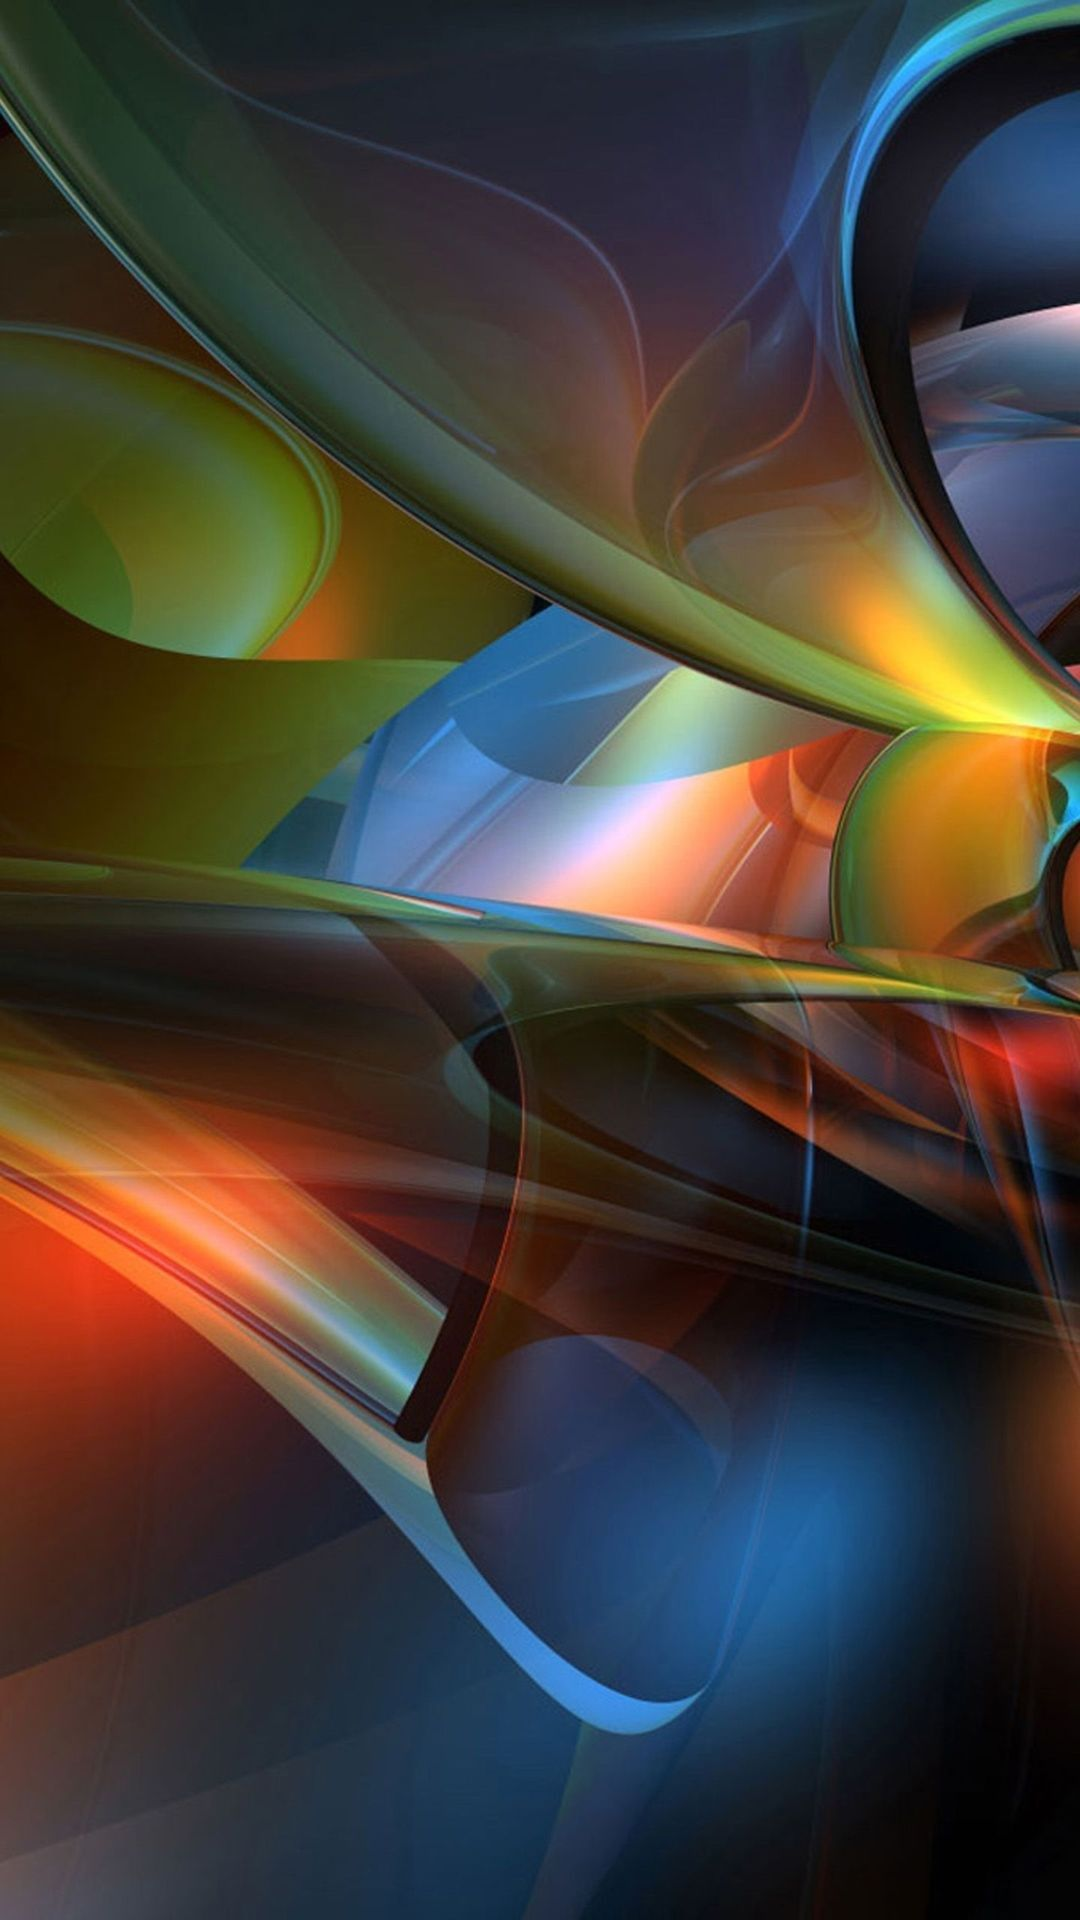 3d Live Wallpaper For Samsung Mobile 3d Abstract Mobile Phone